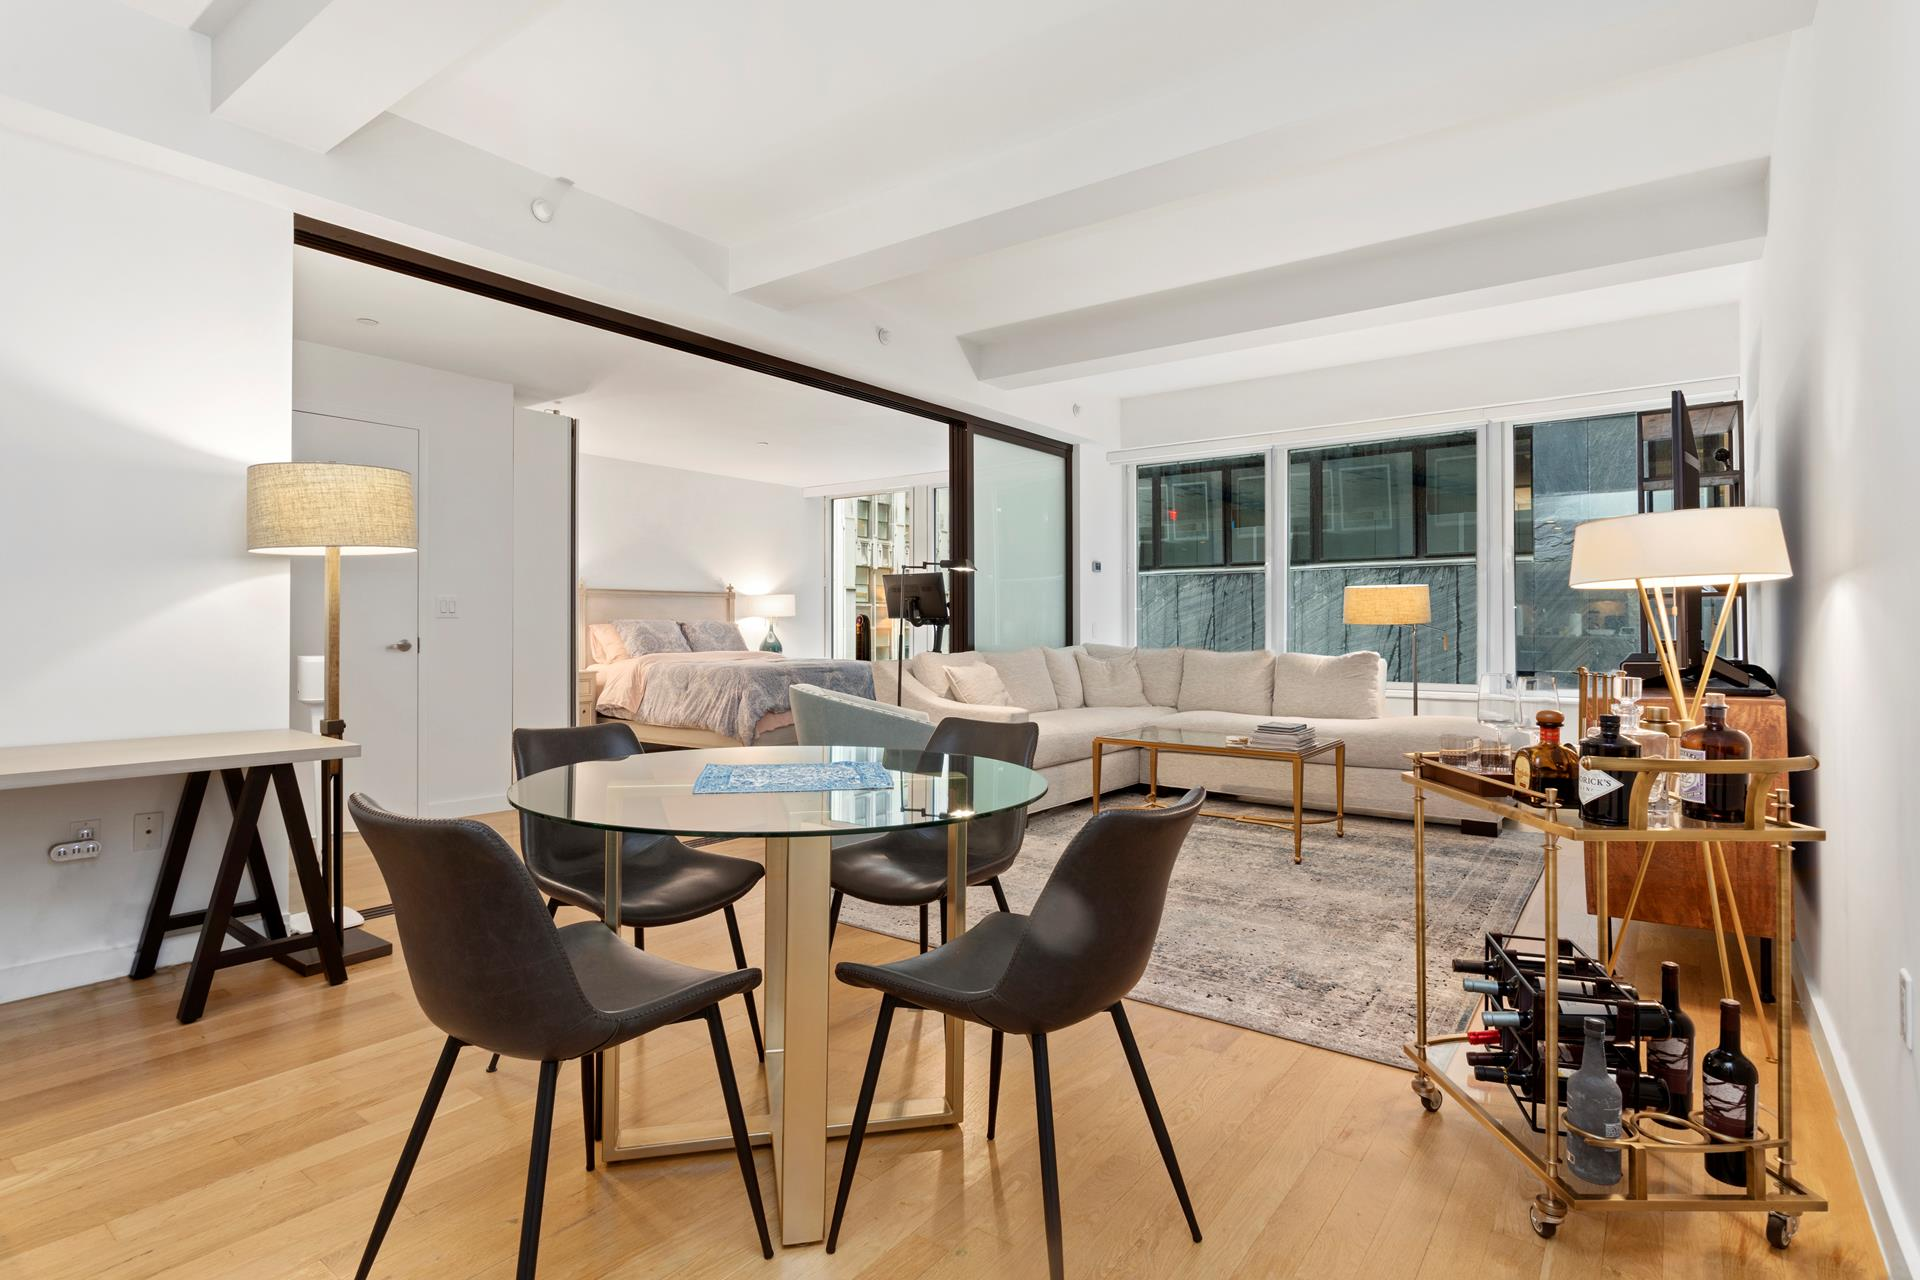 A stunning and functional condo with immaculate finishes and an abundance of natural light, this convertible 2-bedroom, 2-bathroom home sits in the heart of the Financial District. Features of this 1,072 sq. ft. apartment include white oak hardwood floors, ceilings over 9-ft, extra-large double-paned windows, and a large home office, custom black out shades in the master, motorized shades in the living room and a modern open plan layout. This home is incredible for those seeking a large loft space with bedrooms! The gourmet open kitchen is a masterpiece and is outfitted with stainless steel top of the line appliances, Liebherr refrigerator, sleek white lacquer kitchen cabinets and quartz countertops, plus a large island including dishwasher and double-depth sink. It opens to a great room with space to entertain and relax. Both the master bedroom and second bedroom offer generous amounts of space that have been fitted high quality sliding doors in dark stained wood and translucent fiberglass. The master bedroom suite was reconfigured to open directly into the living room, maximizing the width of the entire apartment and expansive set of windows. It has upgraded finishes, which include a custom built-in storage and a walk-in closet. The master ensuite bath features a dual vanity, as well as Kohler and Watermark fixtures, Toto toilets, and classic subway tiling. The oversized bonus room is perfect for a second bedroom, home office, or even a nursery. For convenience and efficiency, the entire home is equipped with a Smart Thermostat system allowing you to control the climate all through a smartphone or tablet at any time. Individual unit washer/dryers are permitted! Amenities are located on the Penthouse-level and include a double-height lounge overlooking a landscaped terrace with an outdoor fireplace and wet bar including a barbeque grill available all year round, a light-filled fitness center, billiards table, and common laundry. The building is excellently maintained by an on-site resident manager, full-time concierge, and dedicated staff. Situated a block away from all major lines 4,5,2,3, A, C and E trains and gourmet supermarkets including one open 24 hours a day. FiDi offers wonderful new parks, 5 star dinning such as Nobu, Blue Ribbon, Danny Meyer's Manhatta, Keith McNally's Augustine, Eataly and the legendary Delmonico's, next to the charm of the South Street Seaport with amazing shops, iPic theater and more.*Massive private storage available fitted with custom shelving.